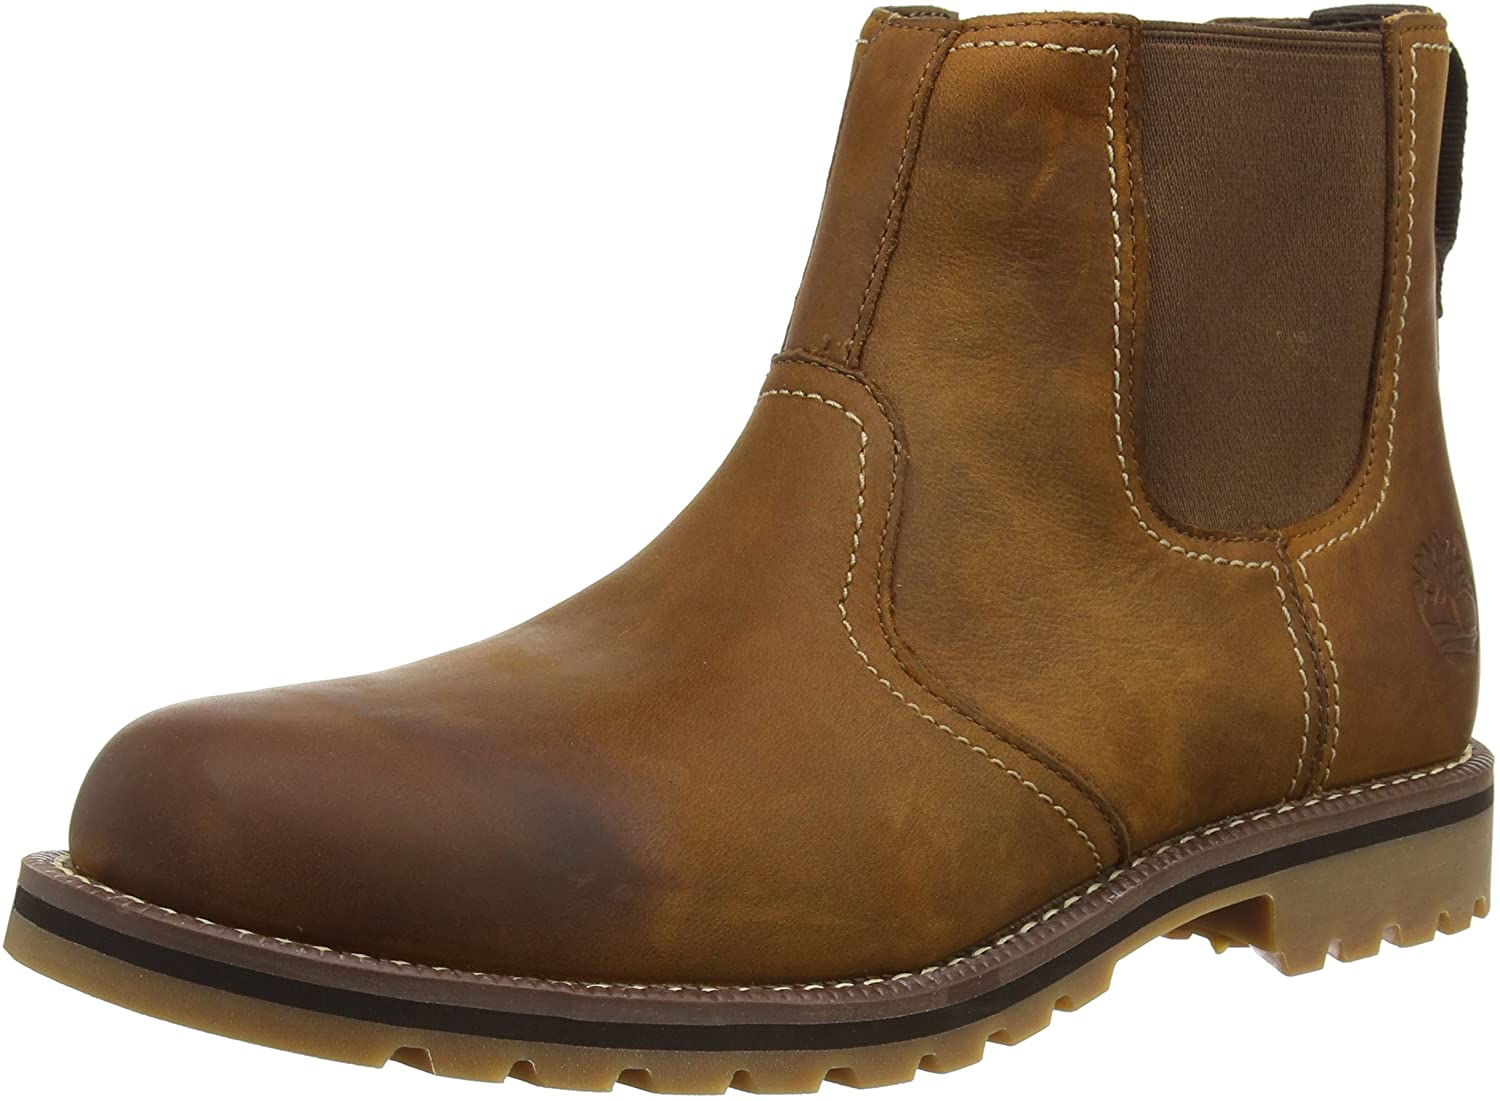 Timberland Mens Larchmont Chelsea Leather Boots